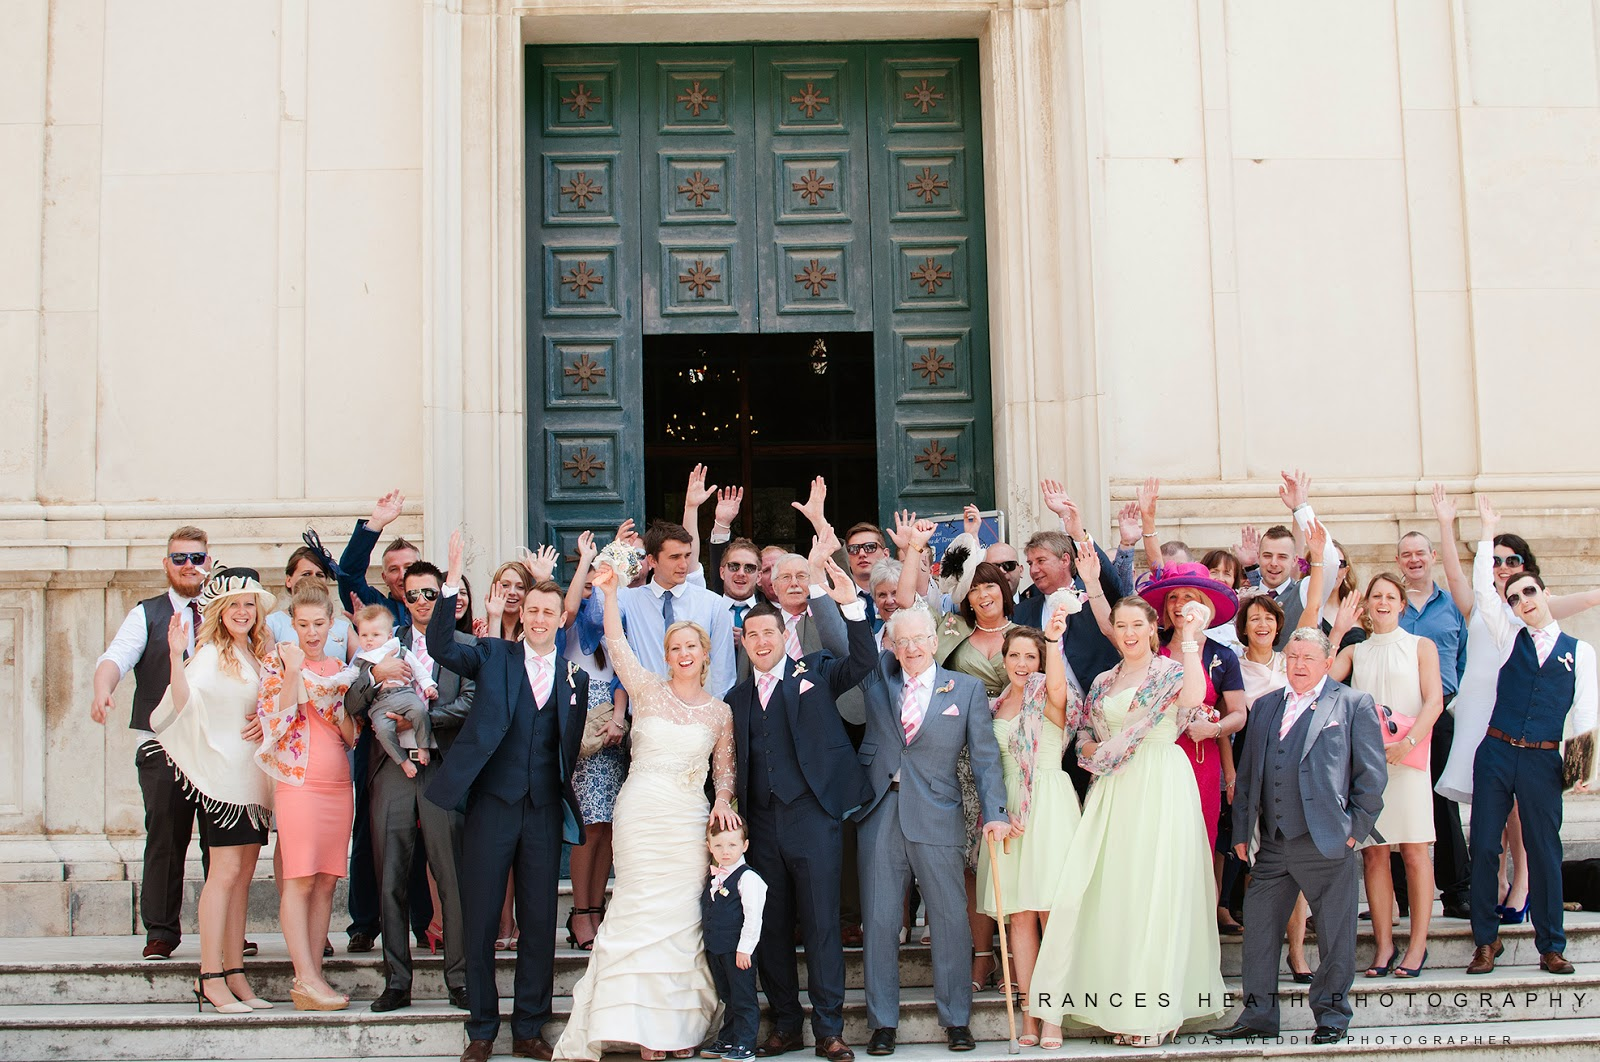 Group wedding photo in Positano